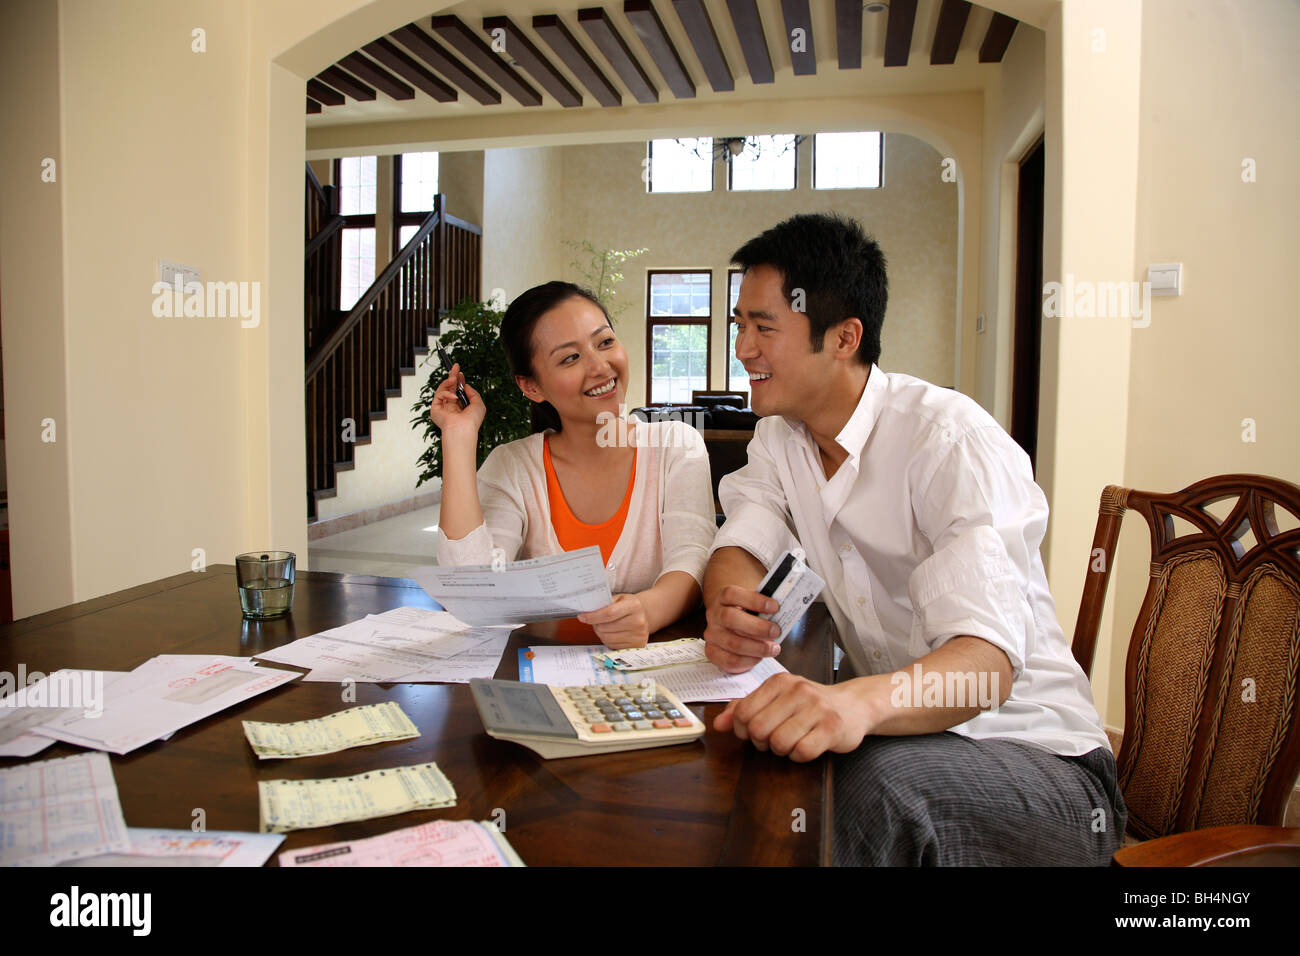 Chinese young couple sitting at table with bank statements - Stock Image